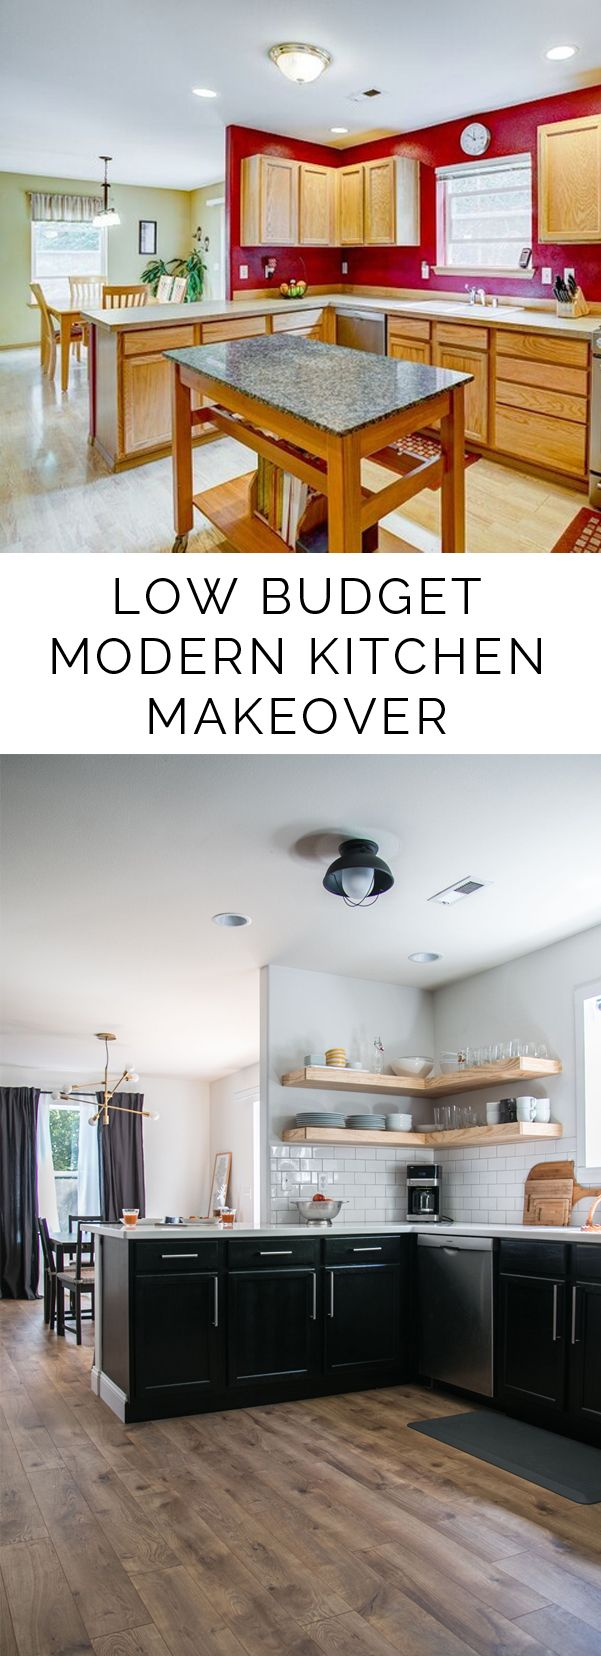 Easy Kitchen Makeover 17 Best Ideas About Budget Kitchen Makeovers On Pinterest Cheap